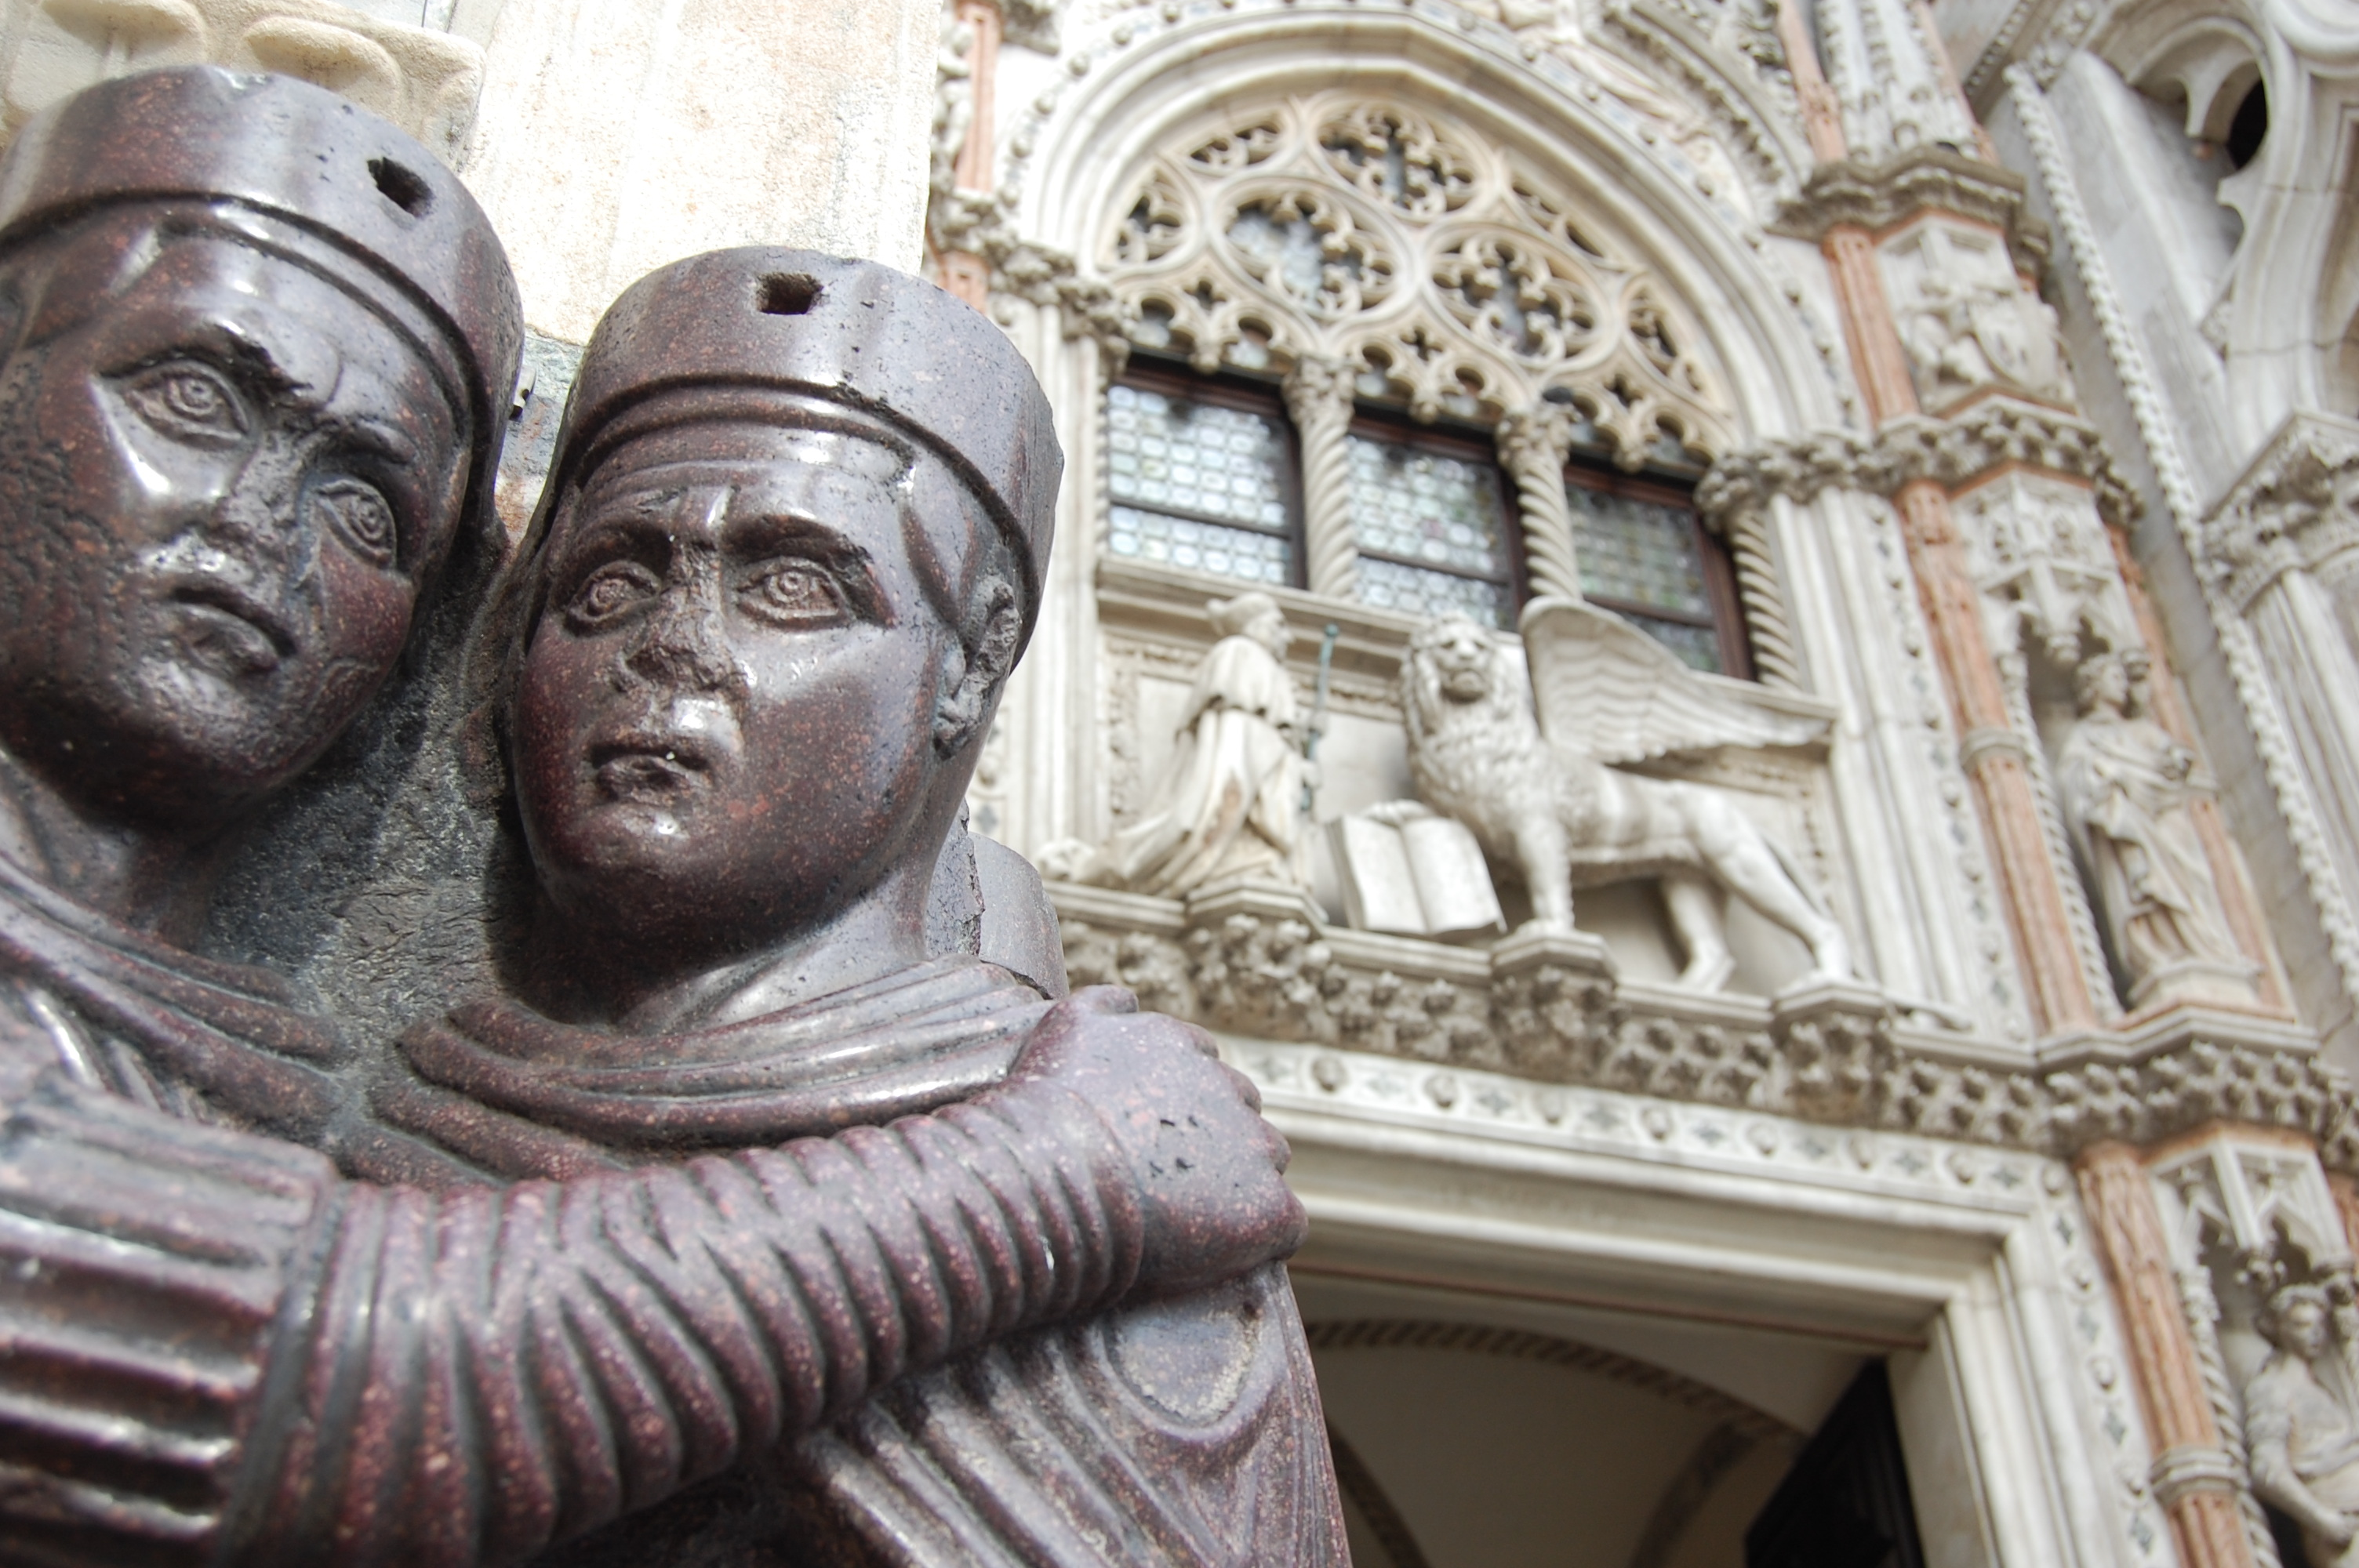 Deepak and I joked that this porphyry statue of The Four Tetrarchs, affixed to St. Mark's Basilica in Venice, brings to mind my penchant for movement-restricting PDA. Clingin' on for love/the durability of the Roman Empire!